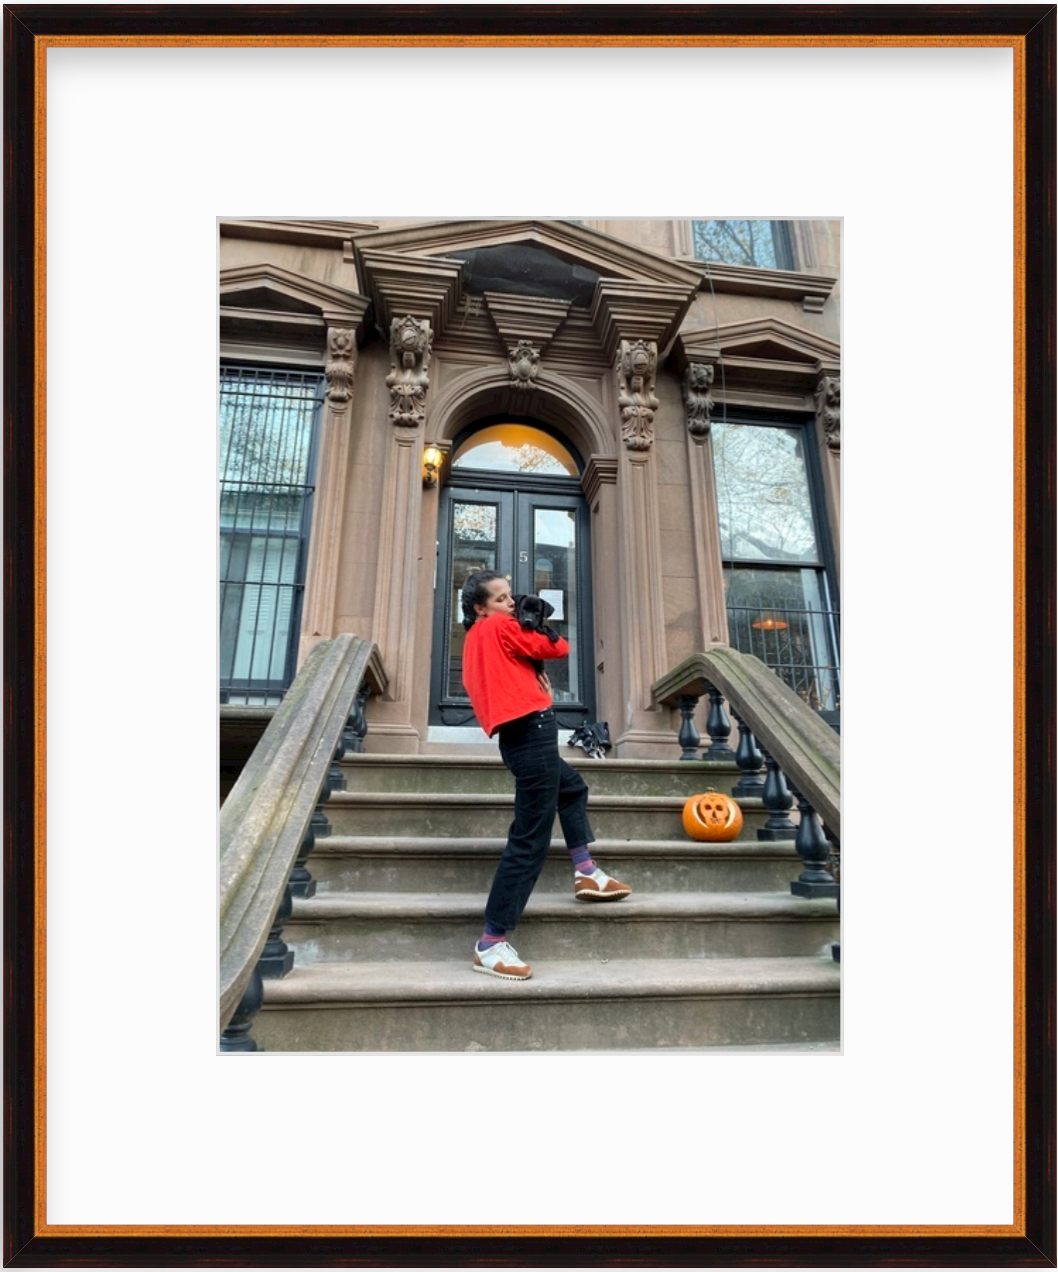 photo of woman with dog on stairs to brownstone in gold and black frame